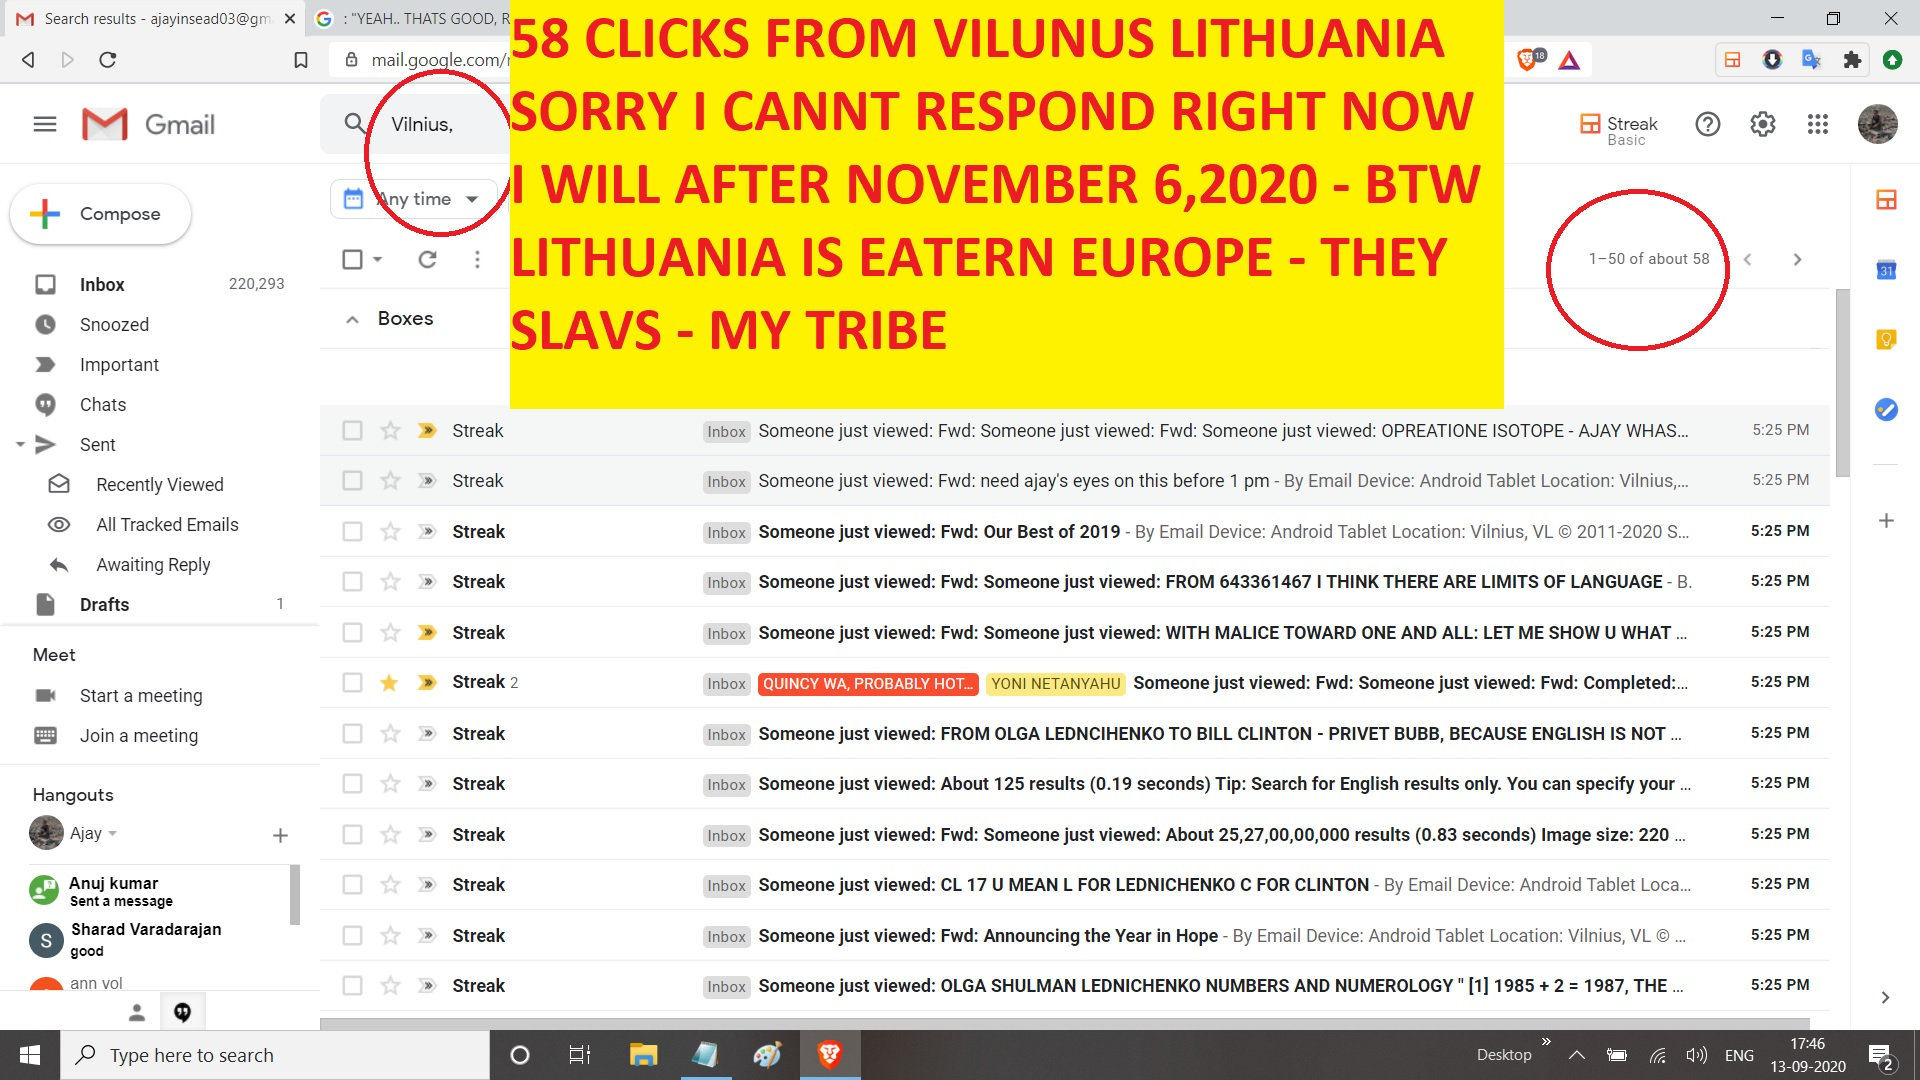 58 CLICKS FROM VILUNUS LITHUANIA SORRY I CANNT RESPOND RIGHT NOW I WILL AFTER NOVEMBER 6,2020 - BTW LITHUANIA IS EATERN EUROPE - THEY SLAVS - MY TRIBE